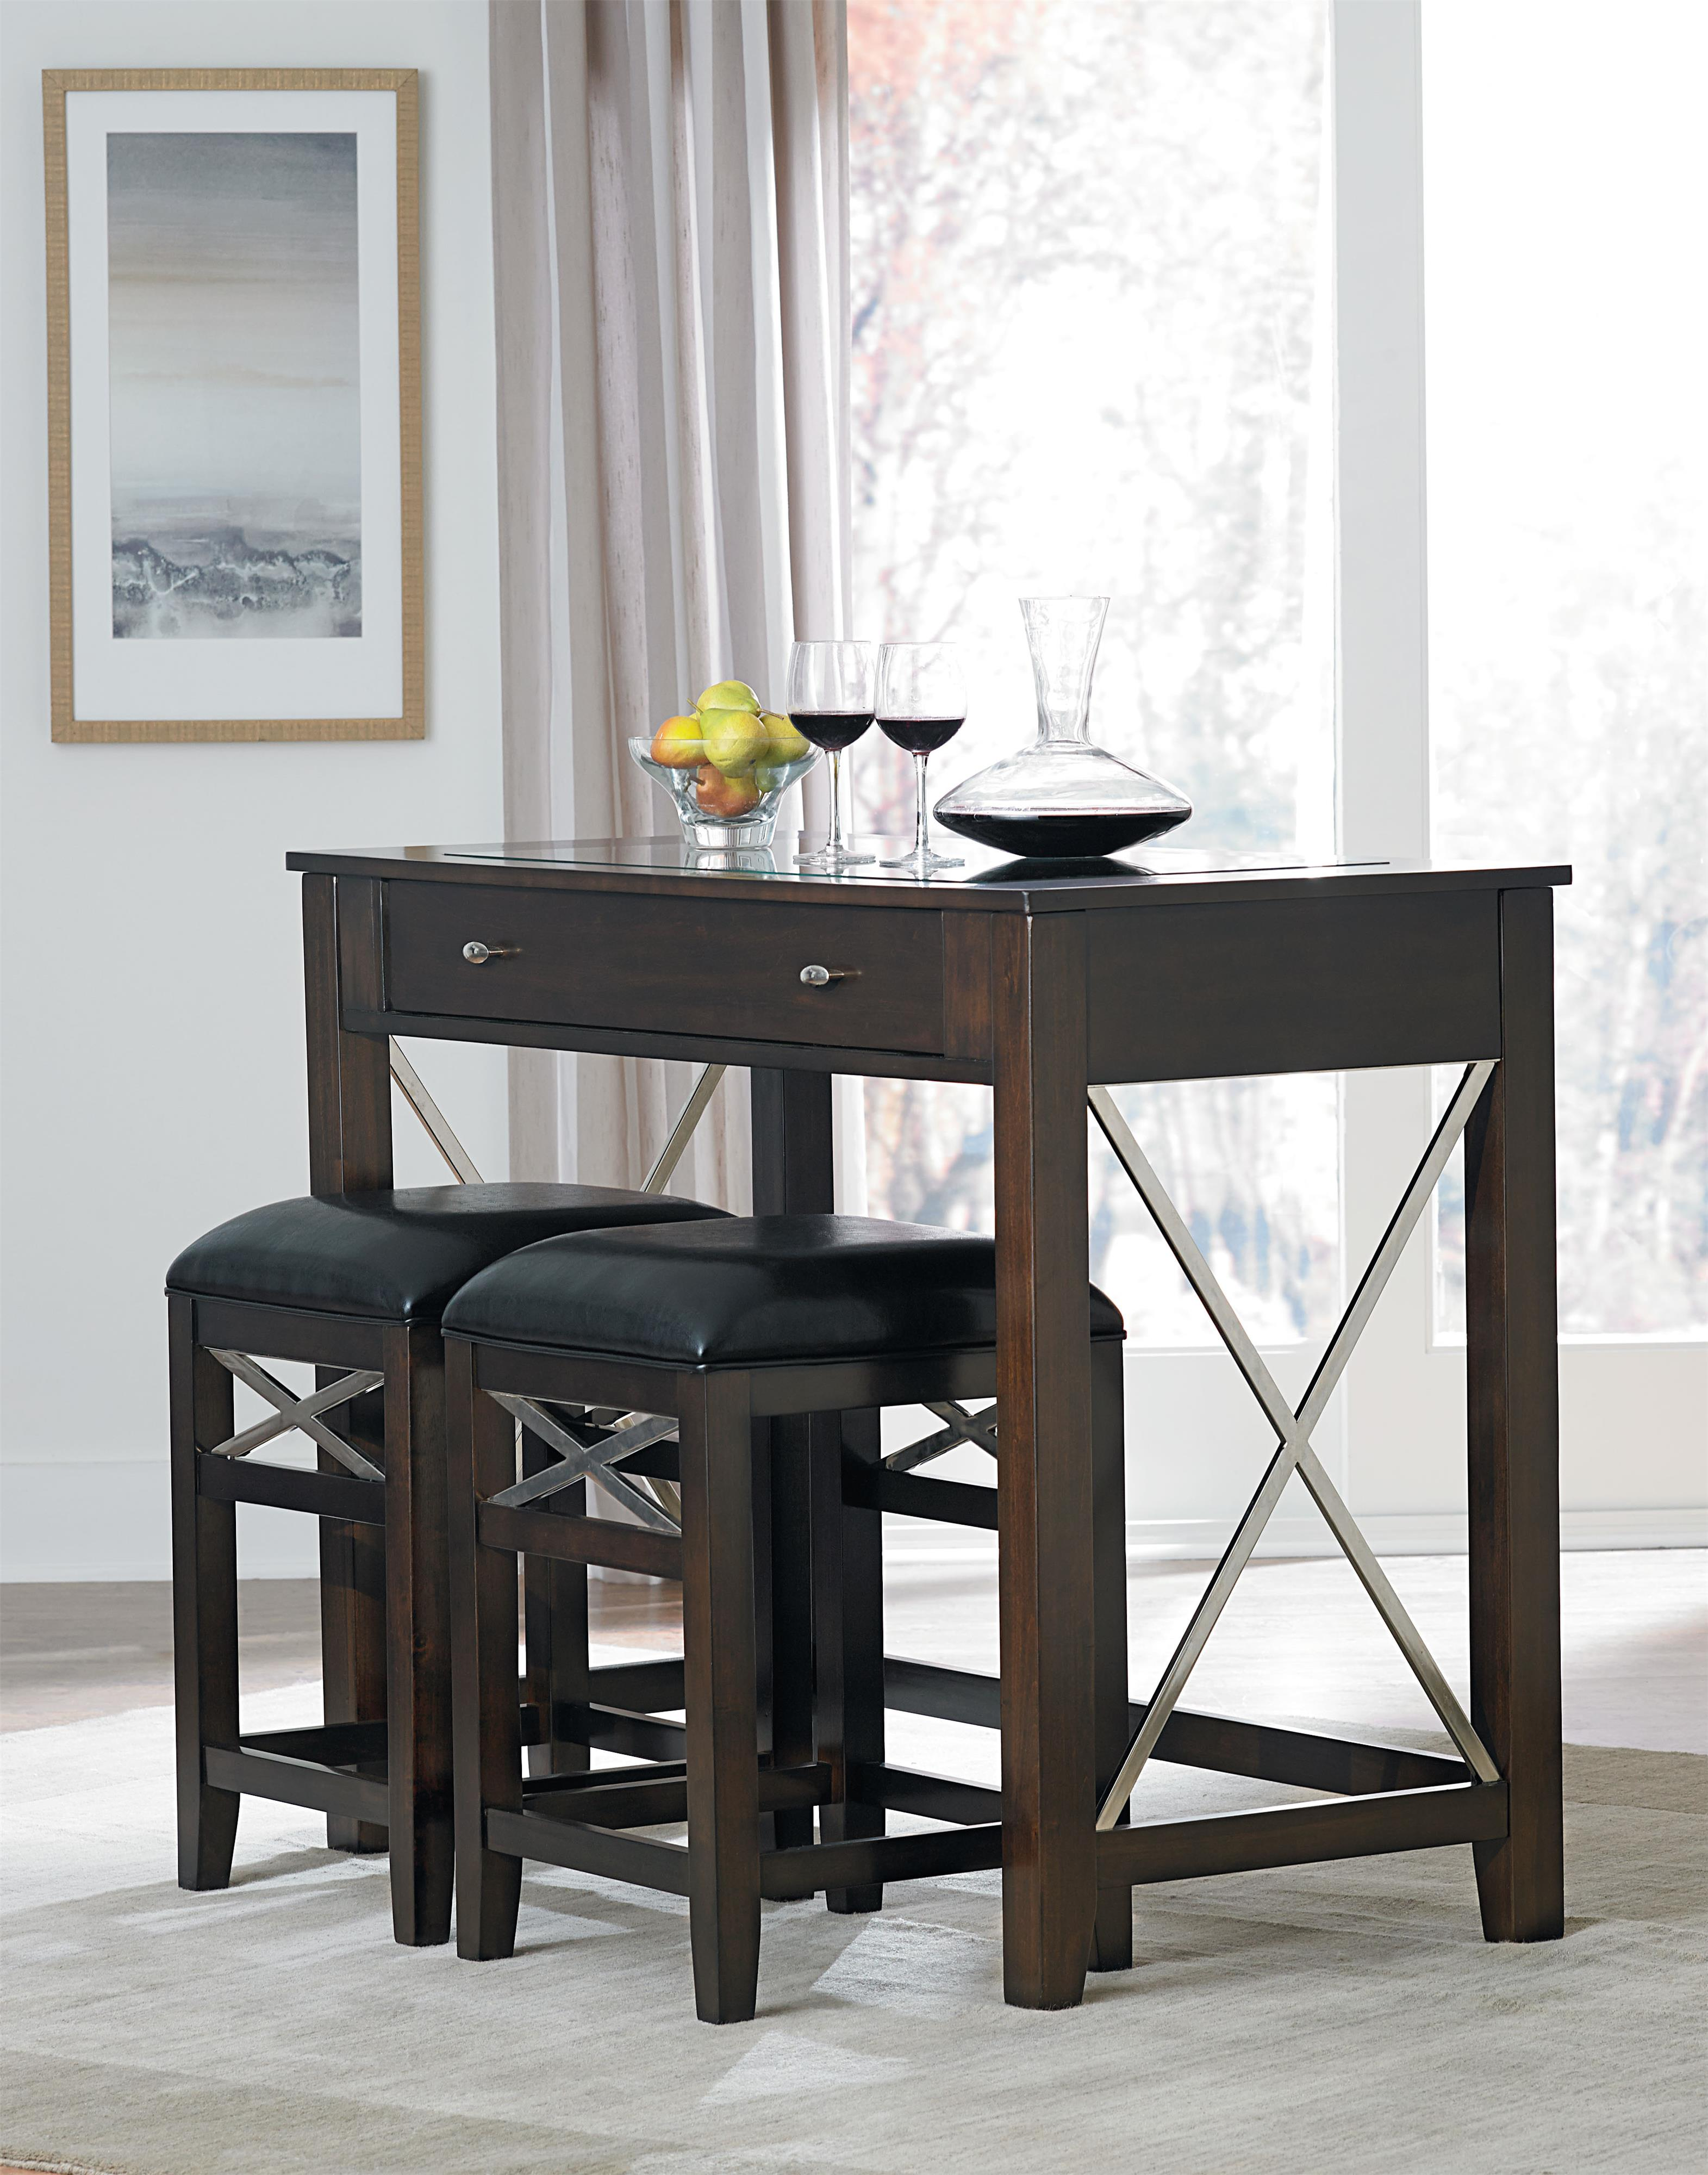 Standard Furniture Alexander Wine Bar with Stools - Item Number: 17401+2x17404